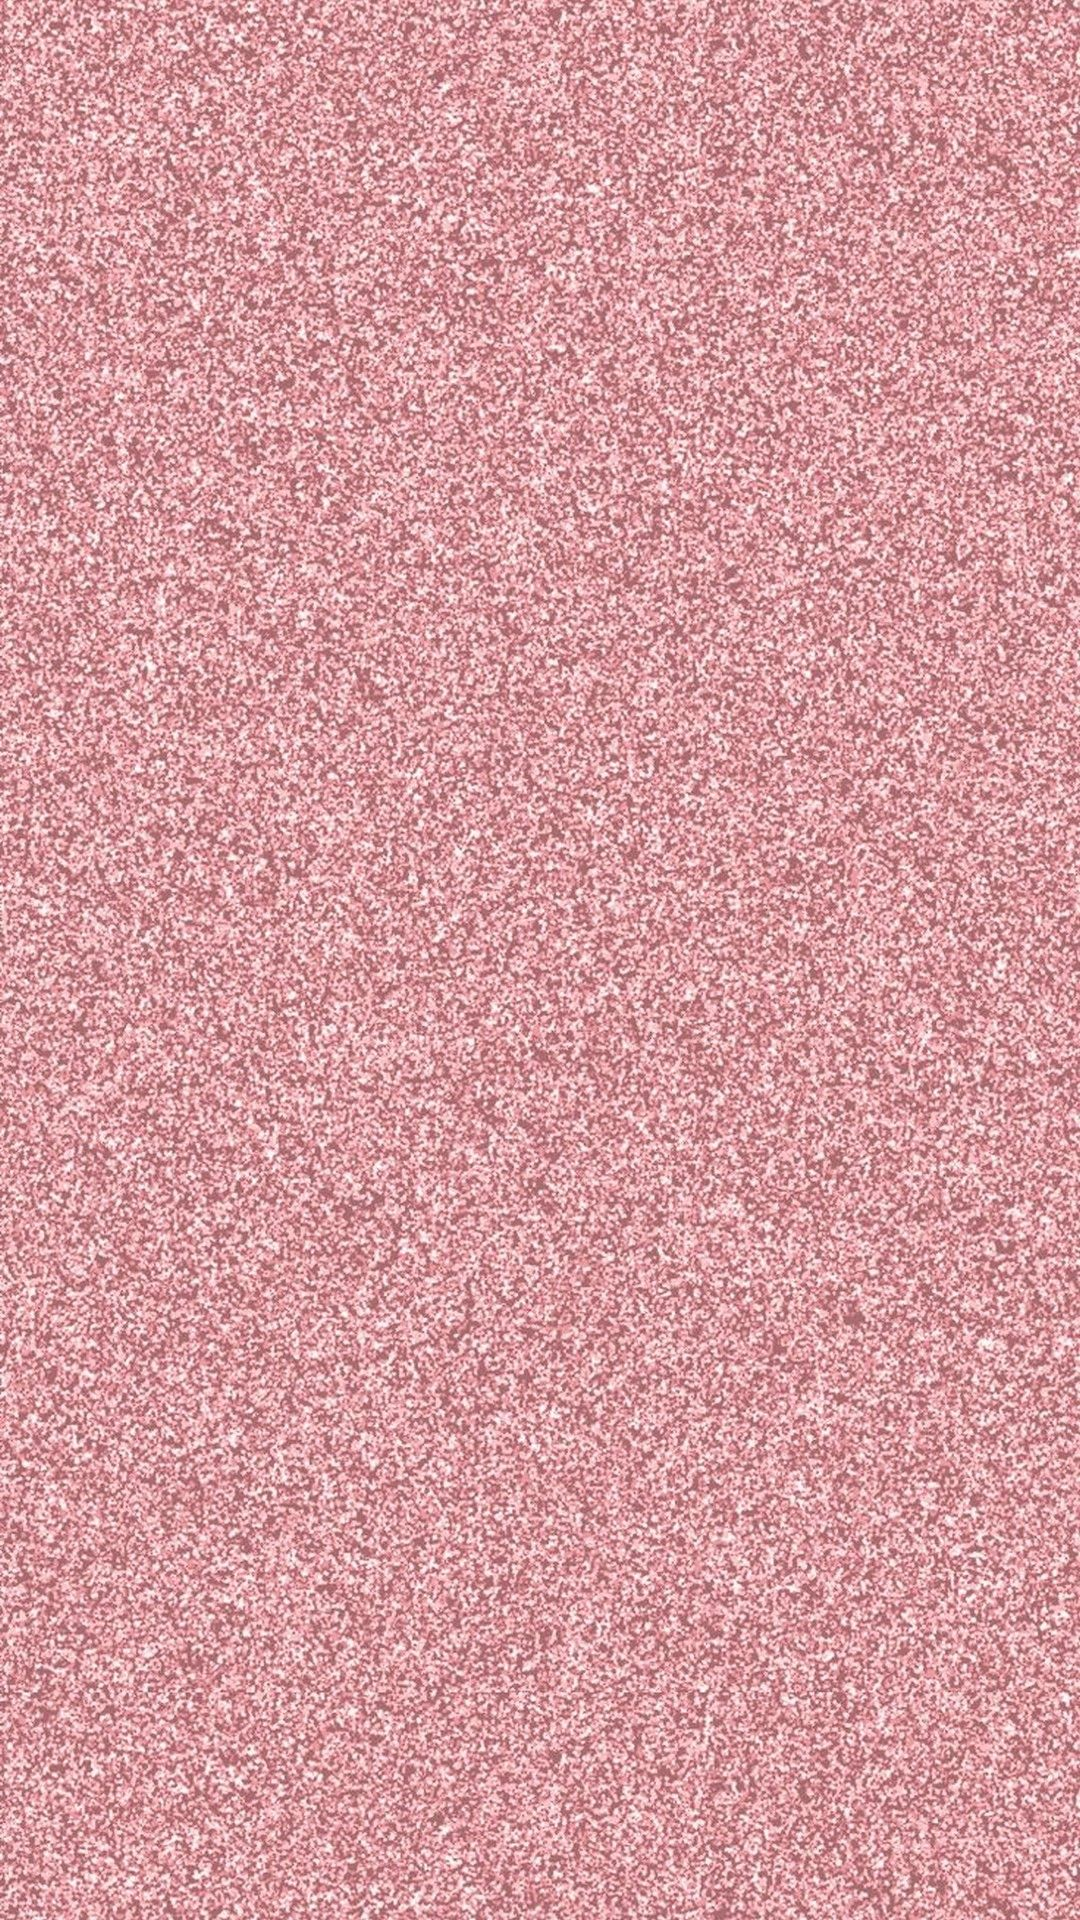 Gray And Gold Wallpaper Home Screen In 2020 Pink Glitter Wallpaper Pink Wallpaper Glitter Wallpaper